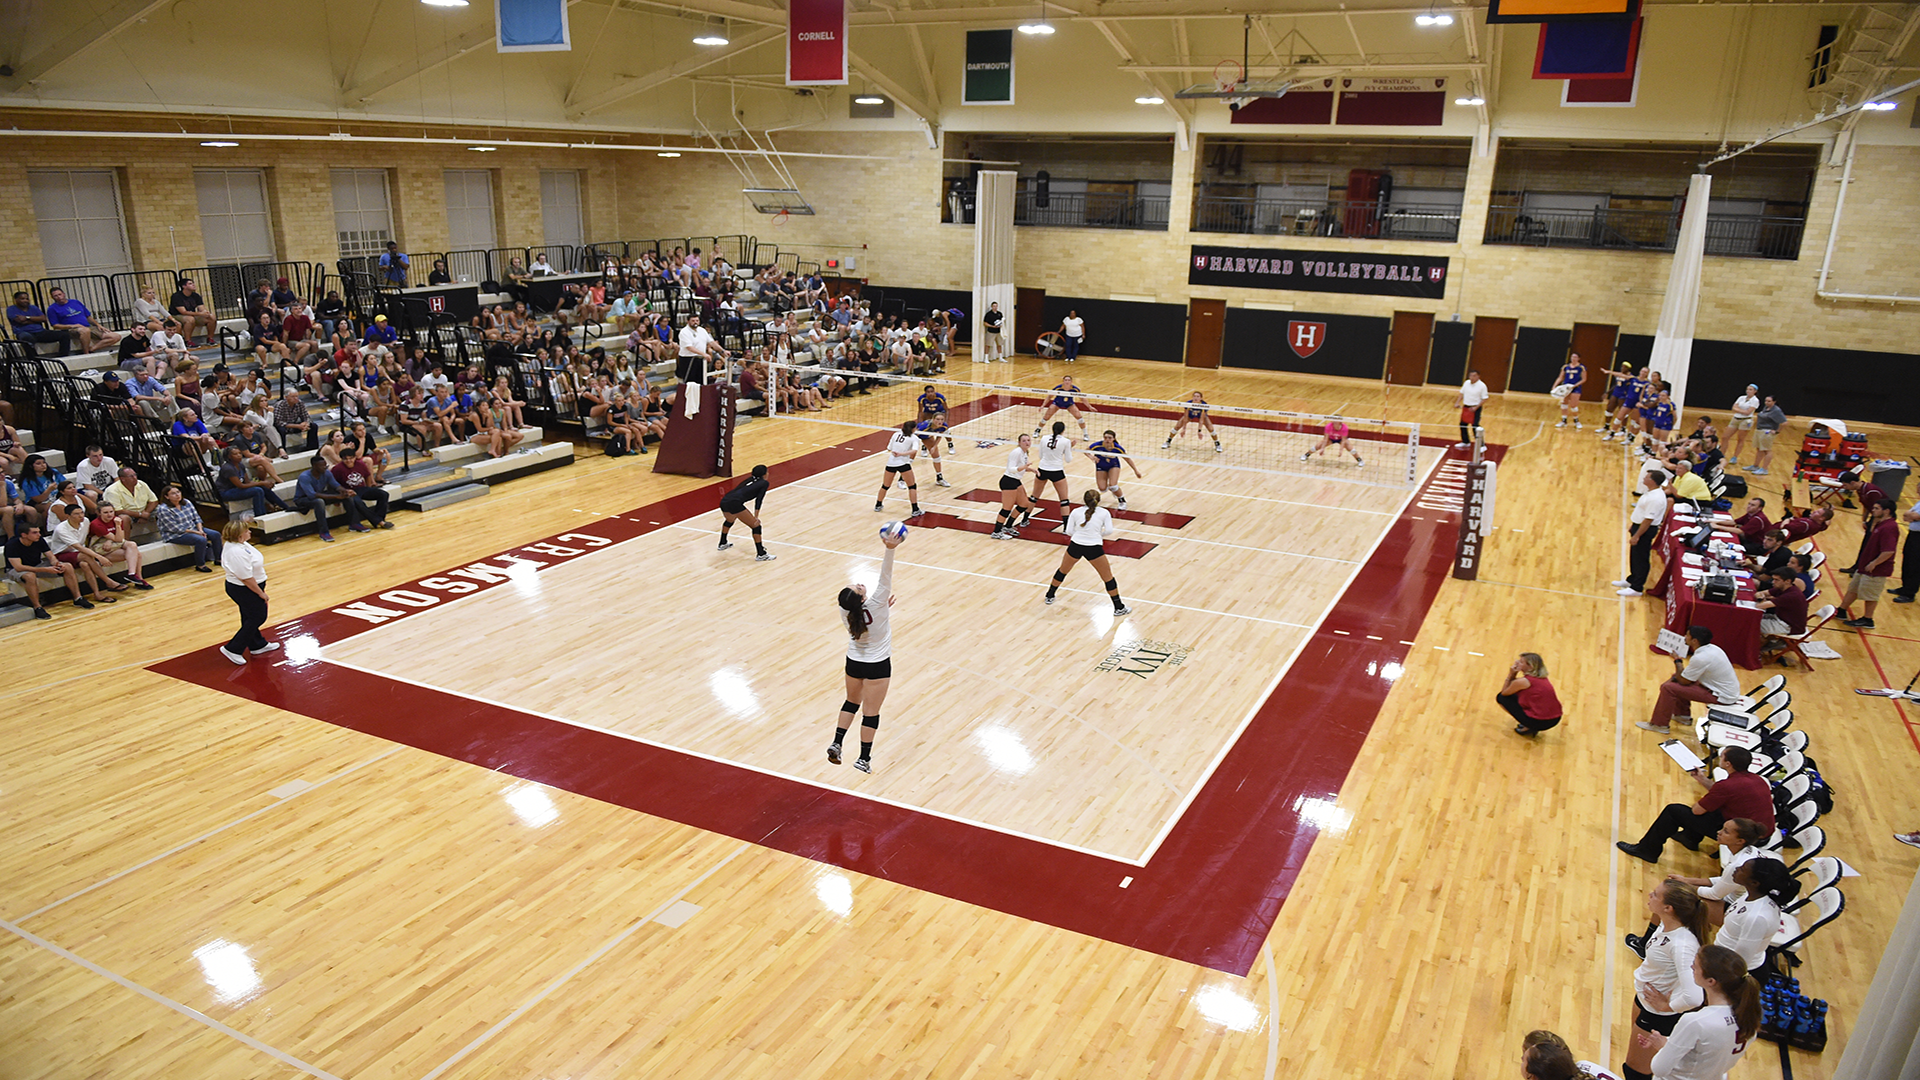 Malkin Athletic Center Volleyball